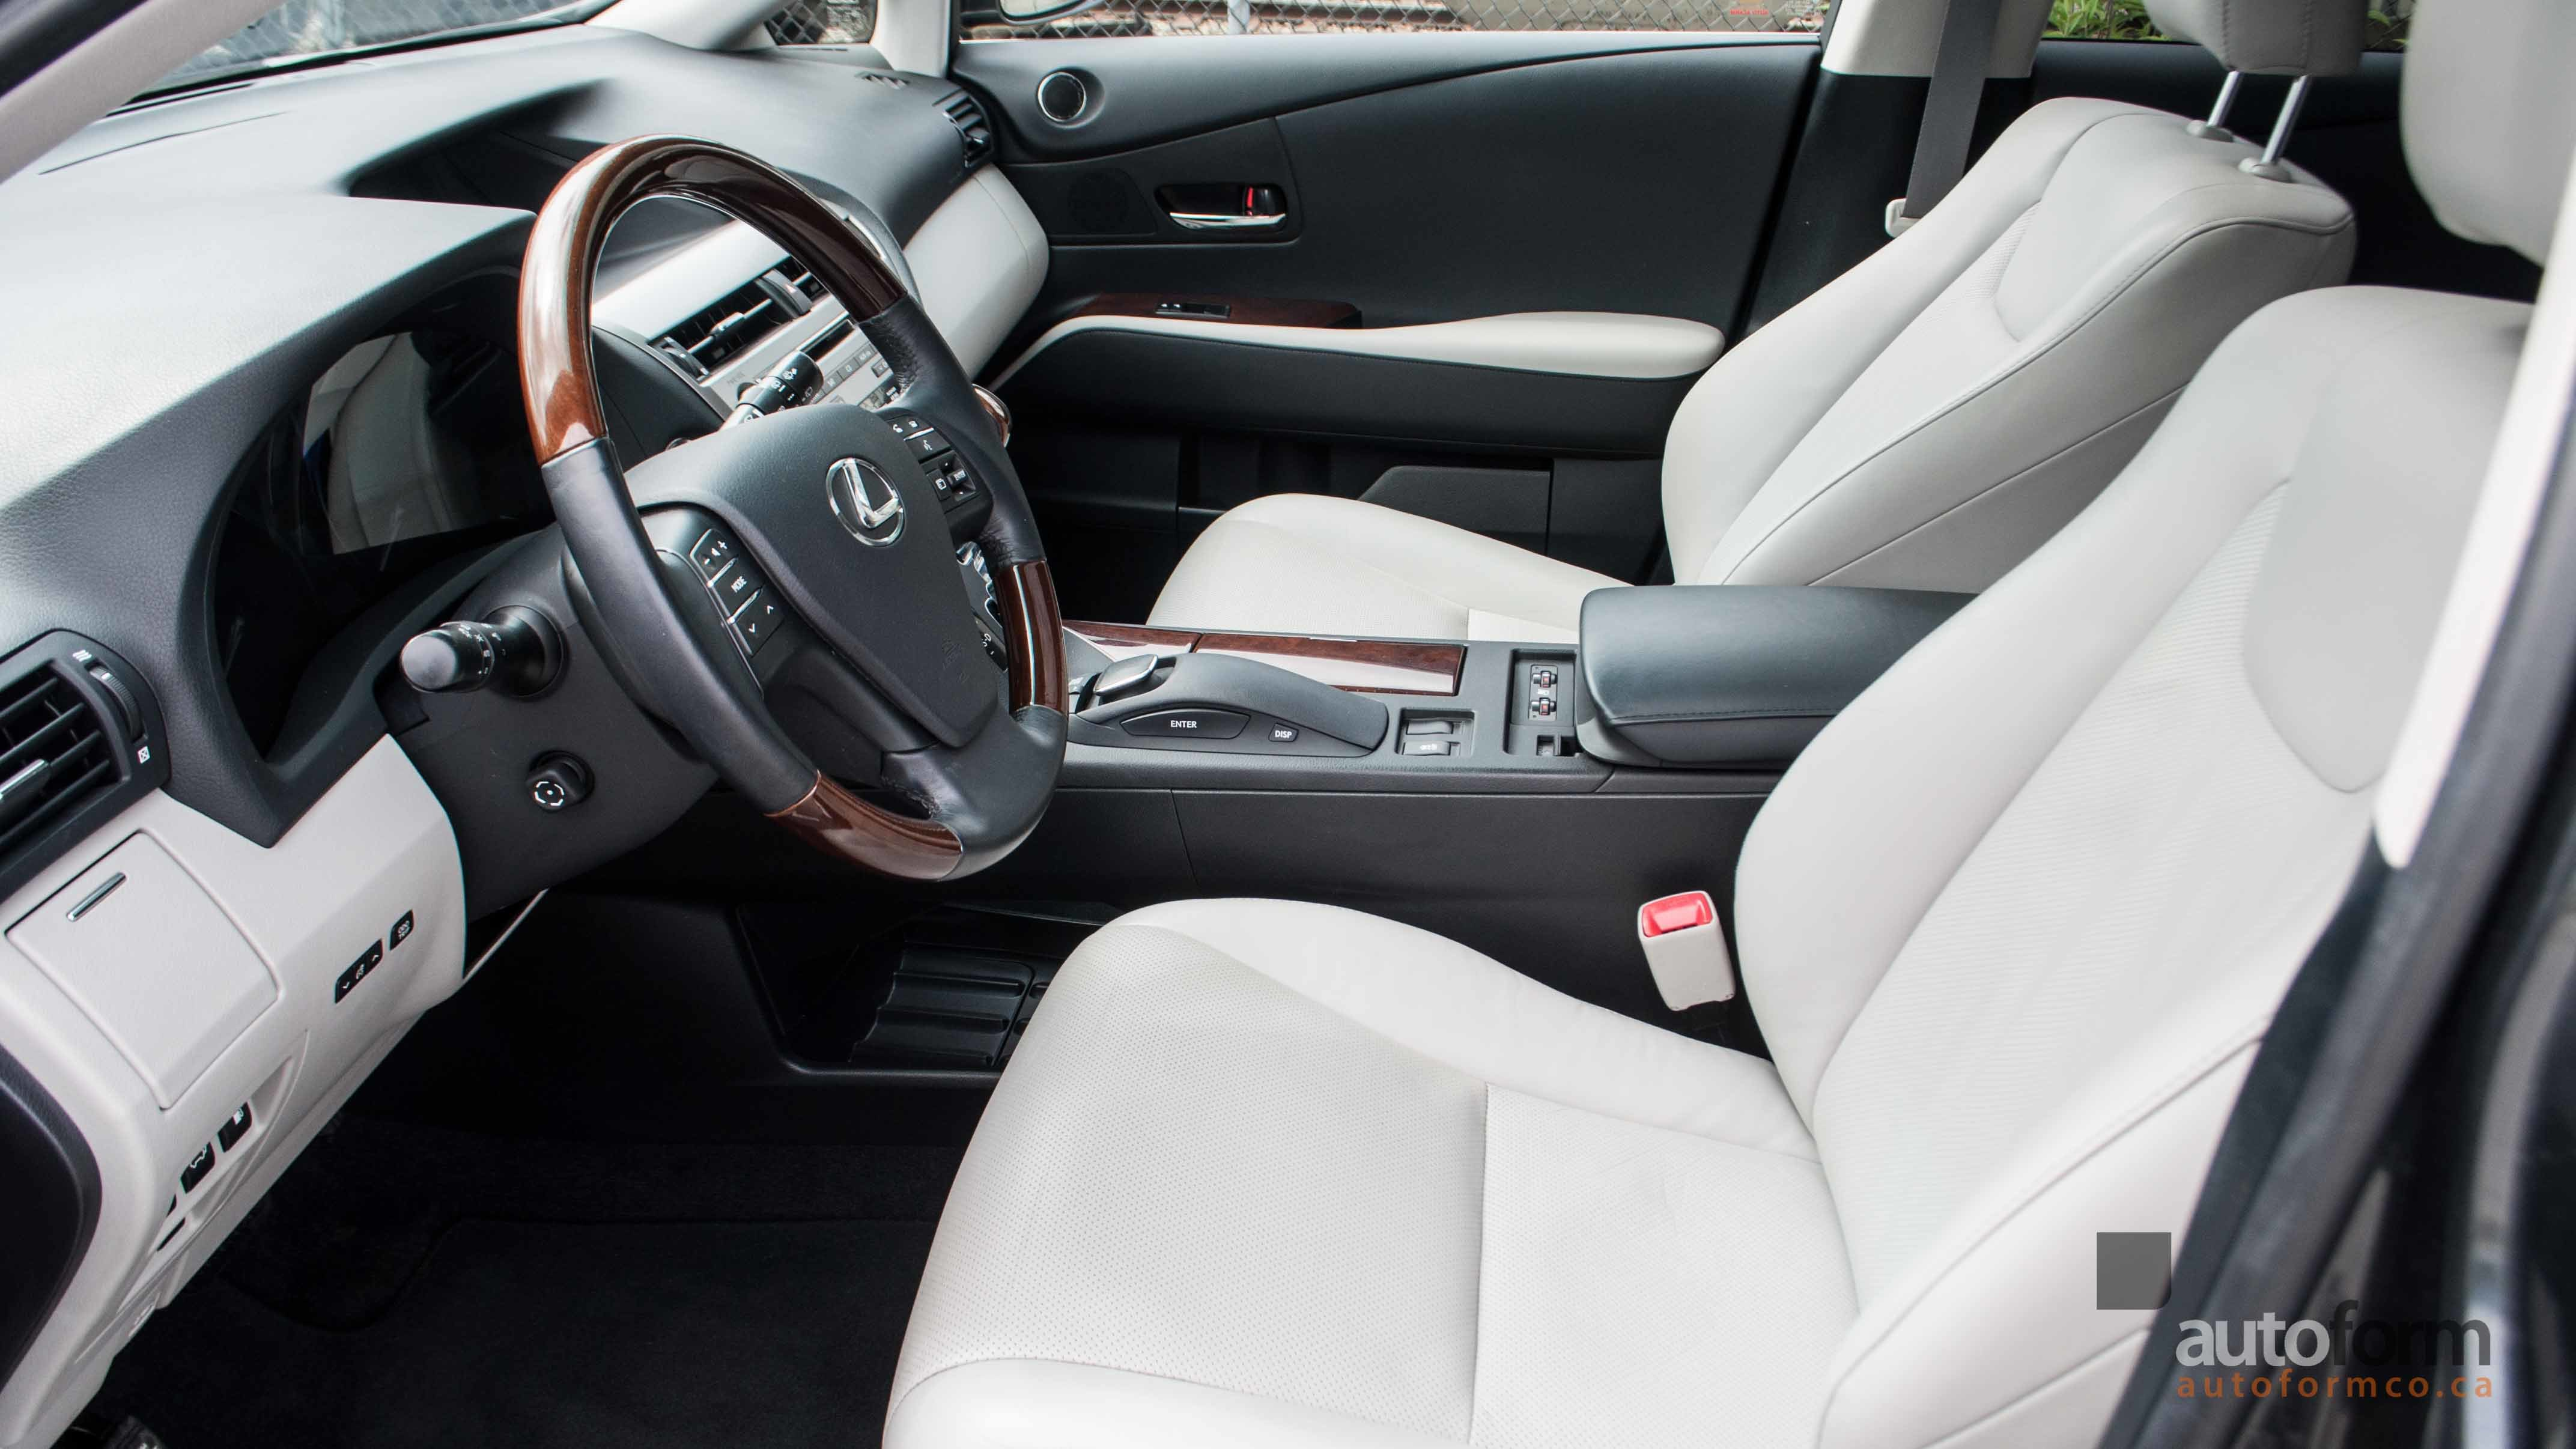 comparing new in lincoln ford la htm to mkx rx an lease lexus dealership inquiry tx make grange